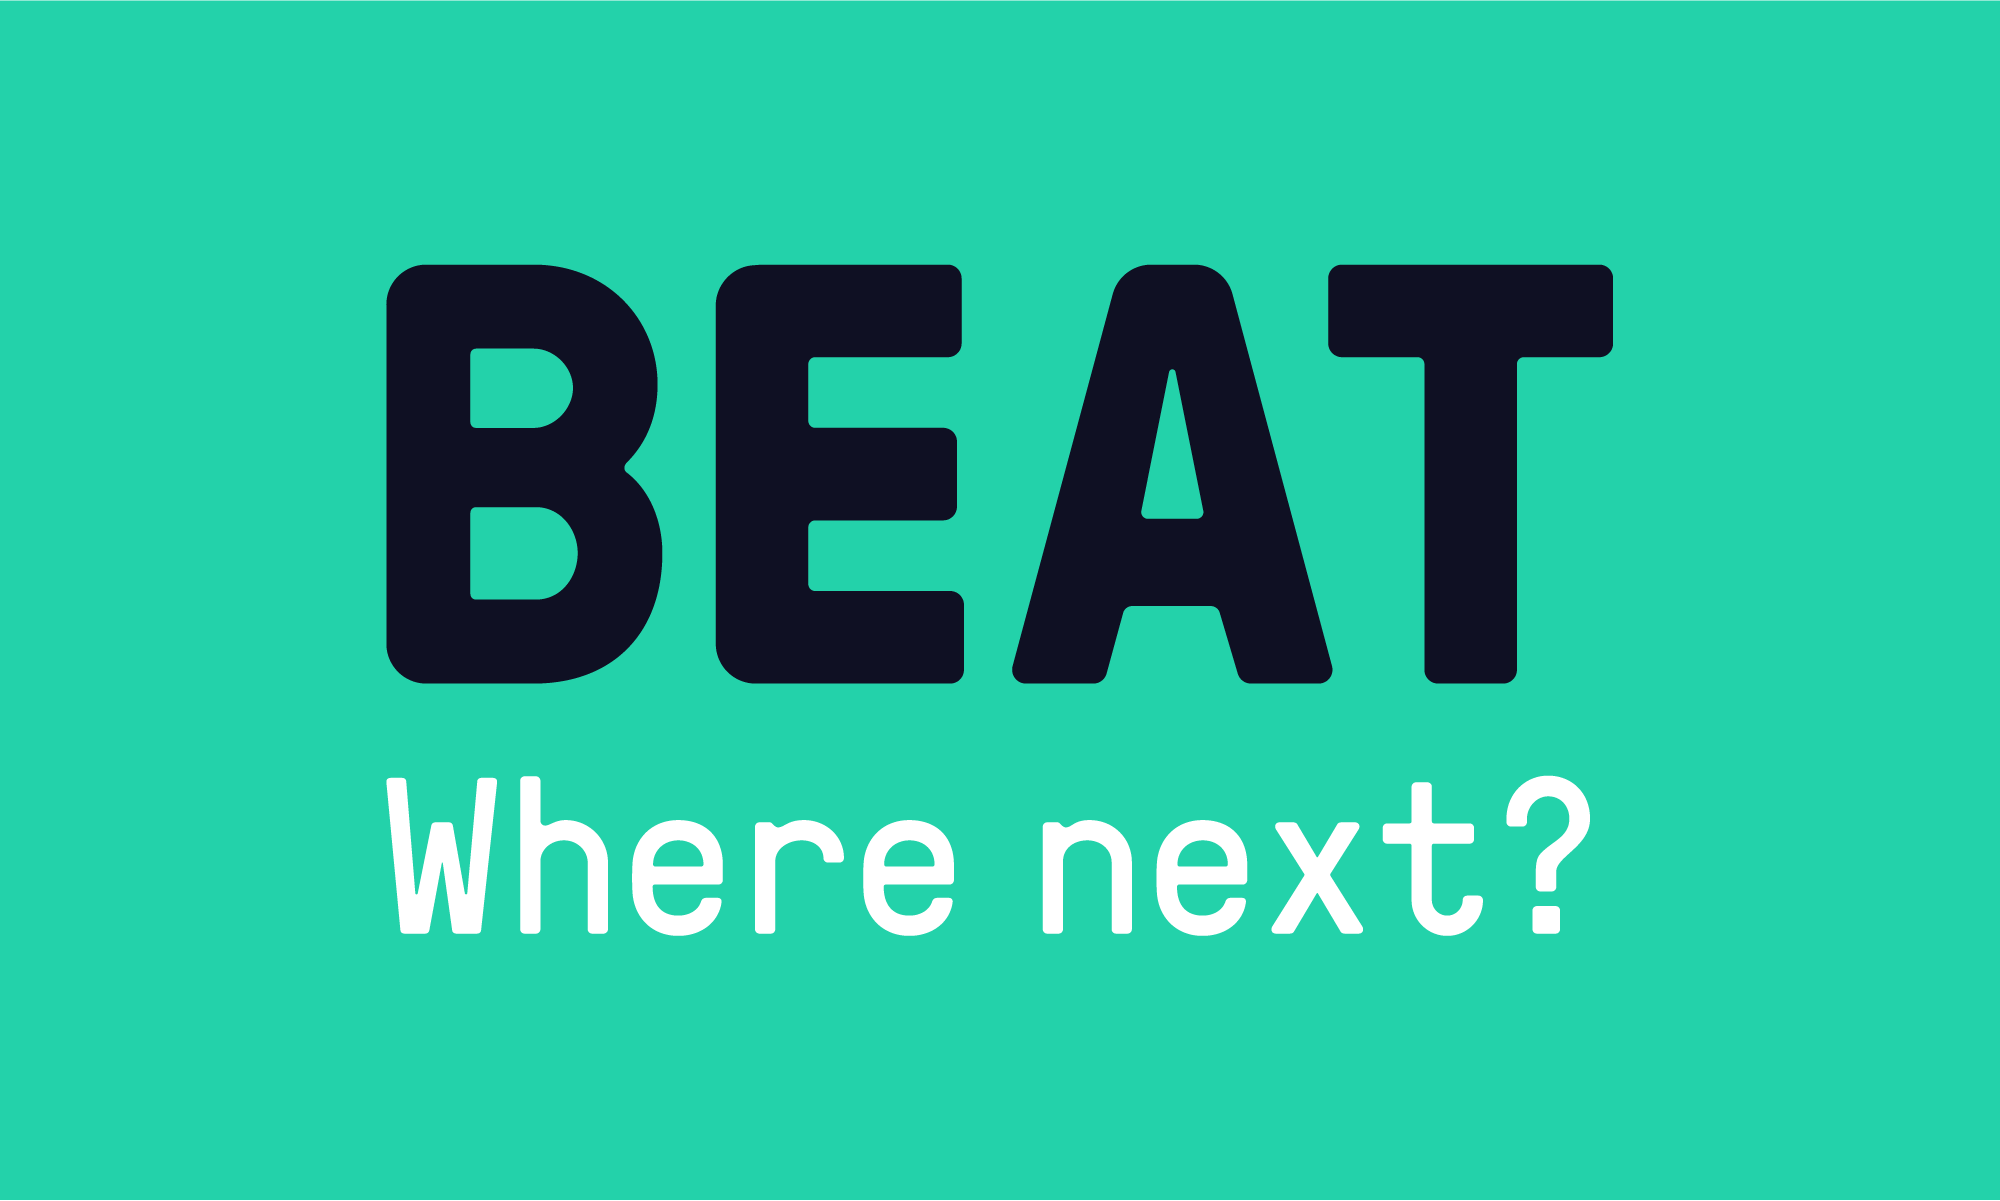 Beat_logo_digital_rgb-01